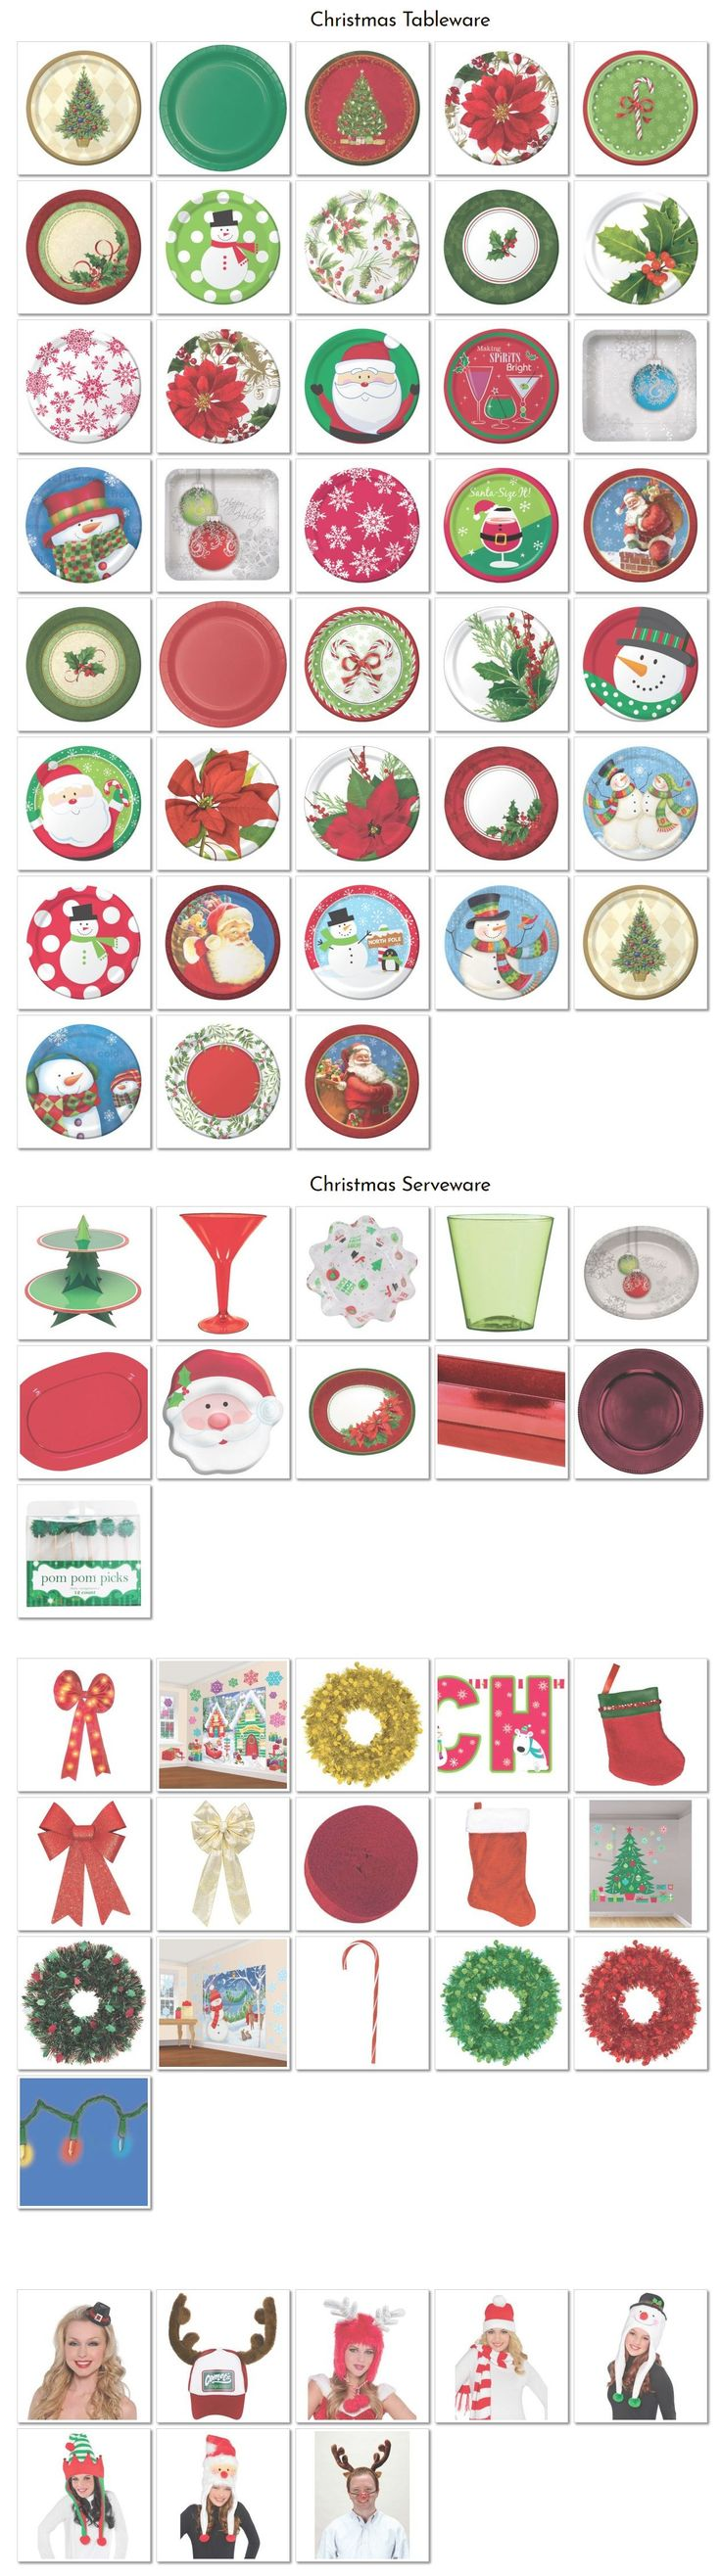 t's the most wonderful time of the year! Prep for your Christmas parties and events with  themed plates, napkins and more from The Party Place! Don't forget to ask Santa for a Party Place gift card or give one to a friend who loves to party. Also ask about our balloon creations and delivery options for your event this season.  https://www.partyplacear.com/party-supplies/holidays/christmas #ThePartyPlace #Christmas